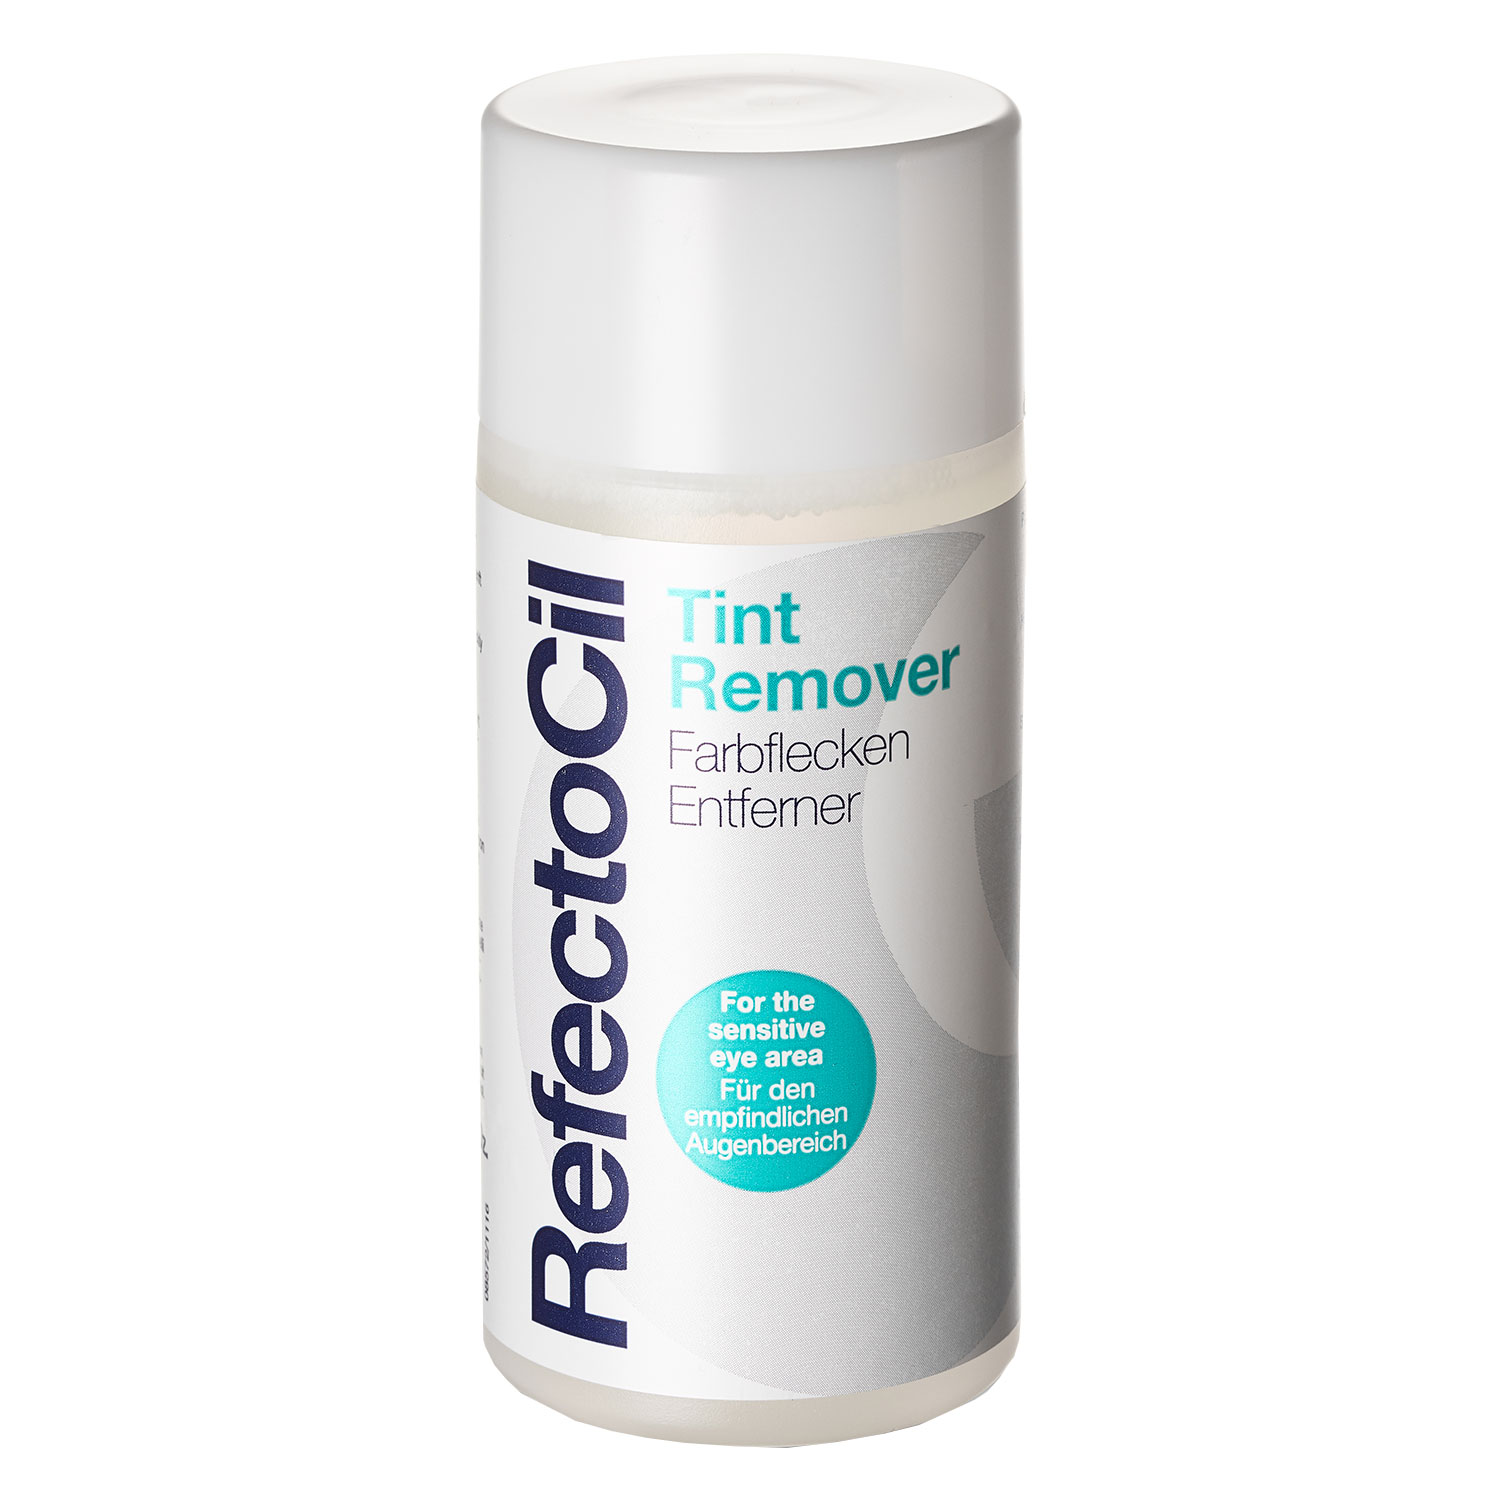 RefectoCil - Tint Remover